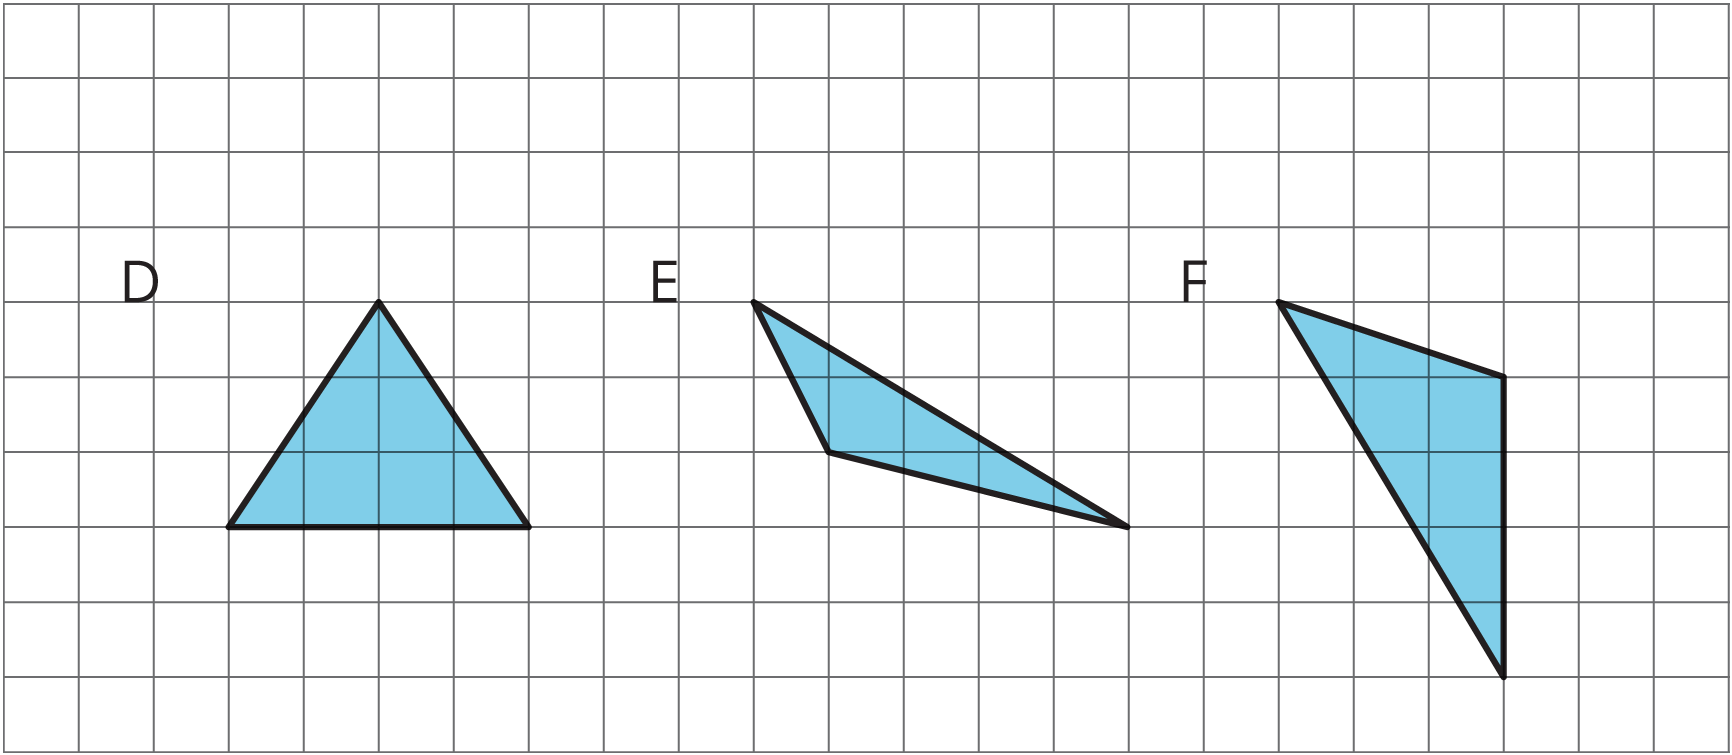 Three triangles labeled D, E, and F.